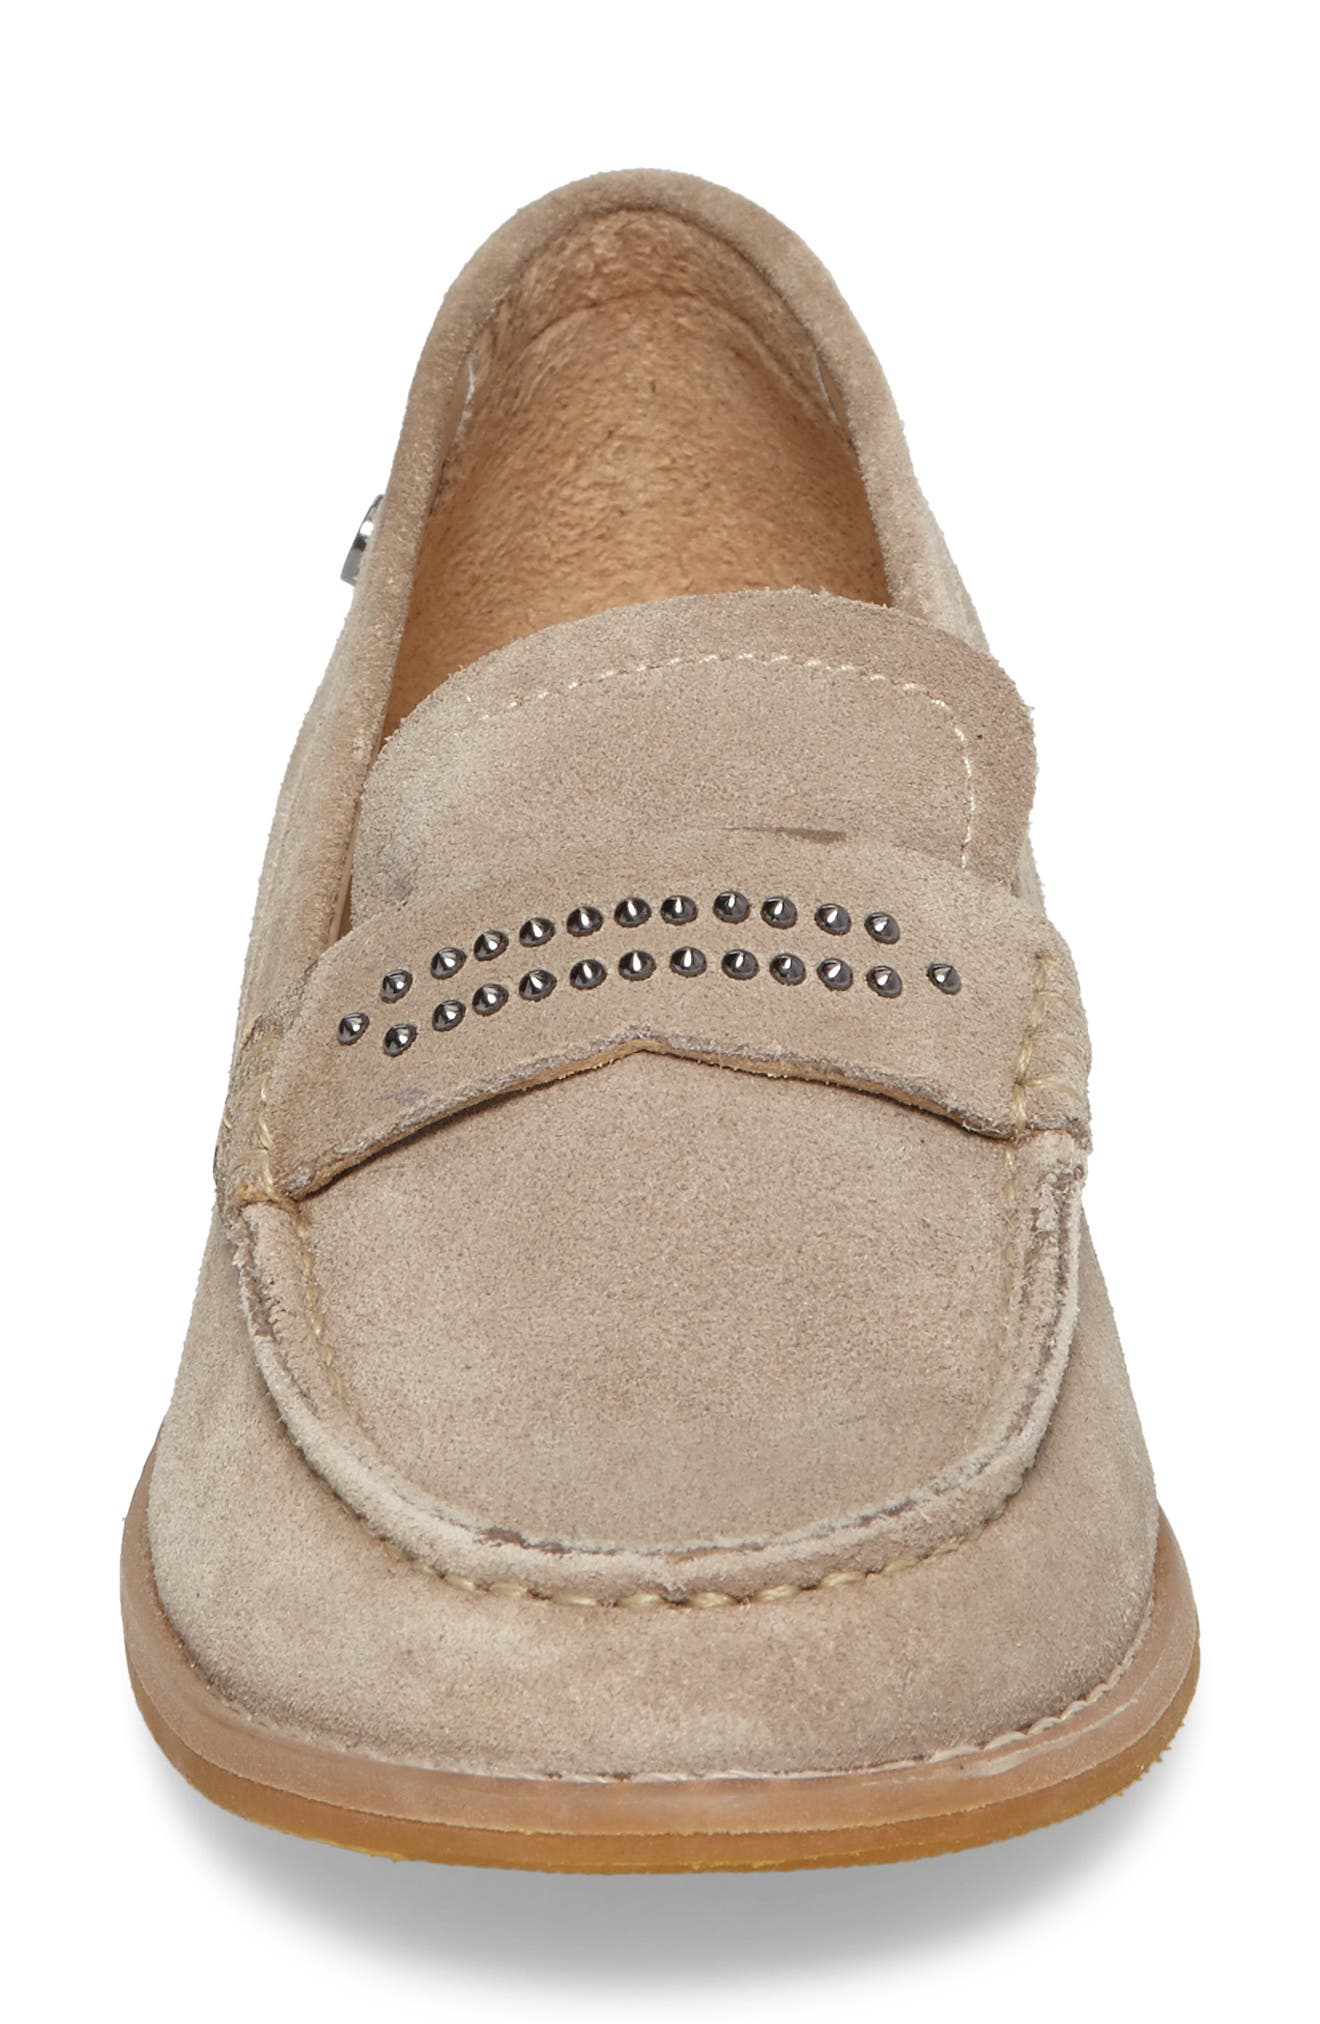 Aubree Chardon Loafer,                             Alternate thumbnail 4, color,                             Taupe Suede